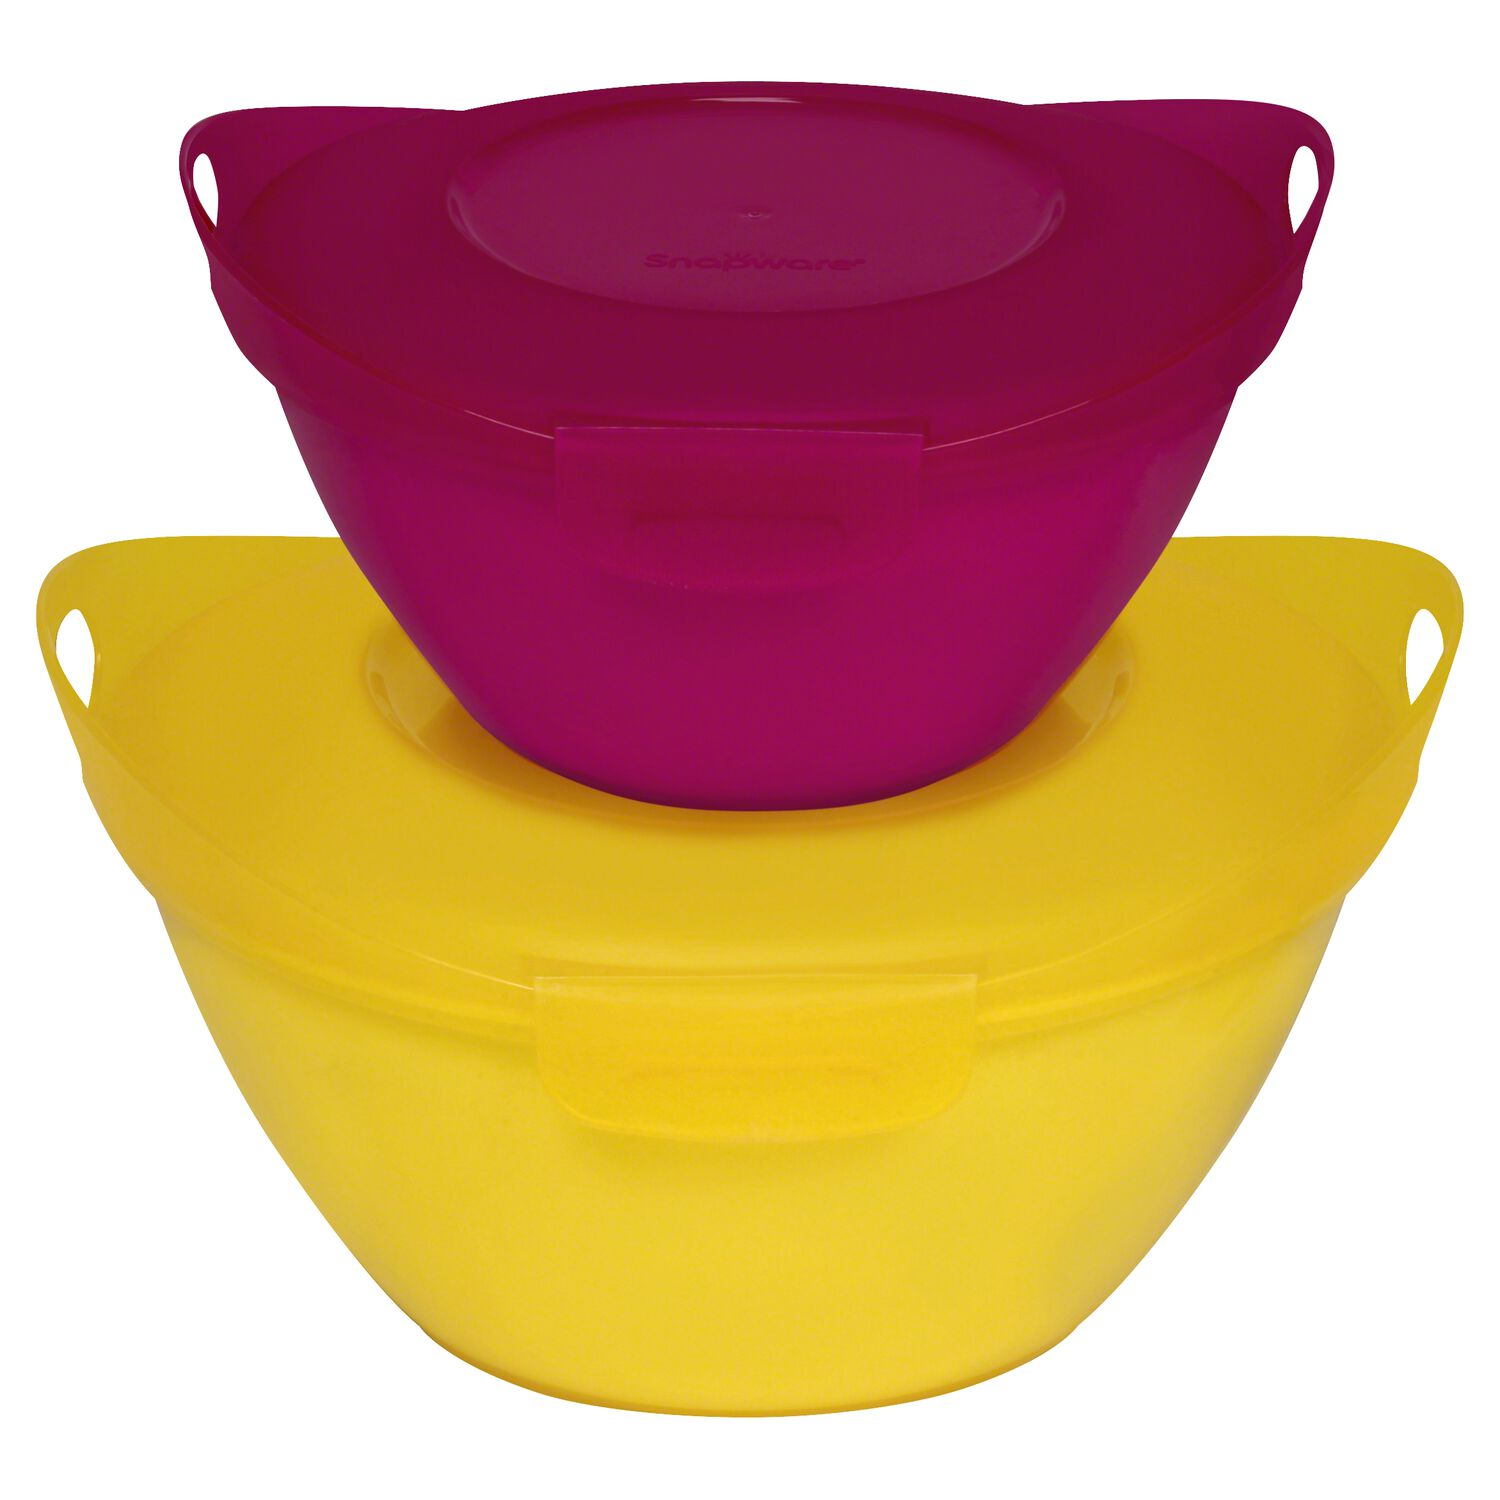 Snapware Entertain-a-Bowl 4-pc Small Value Pack, Yellow & Pink